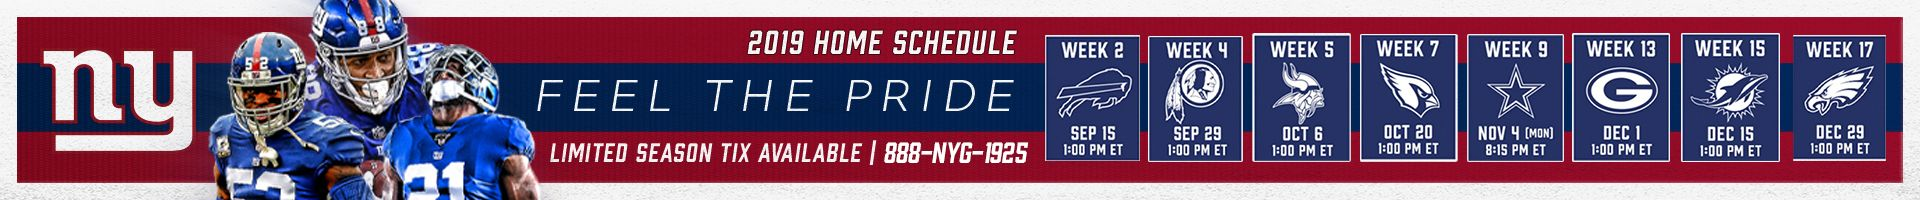 NYG_Feel_The_Pride_Schedule_1920x200_v1A